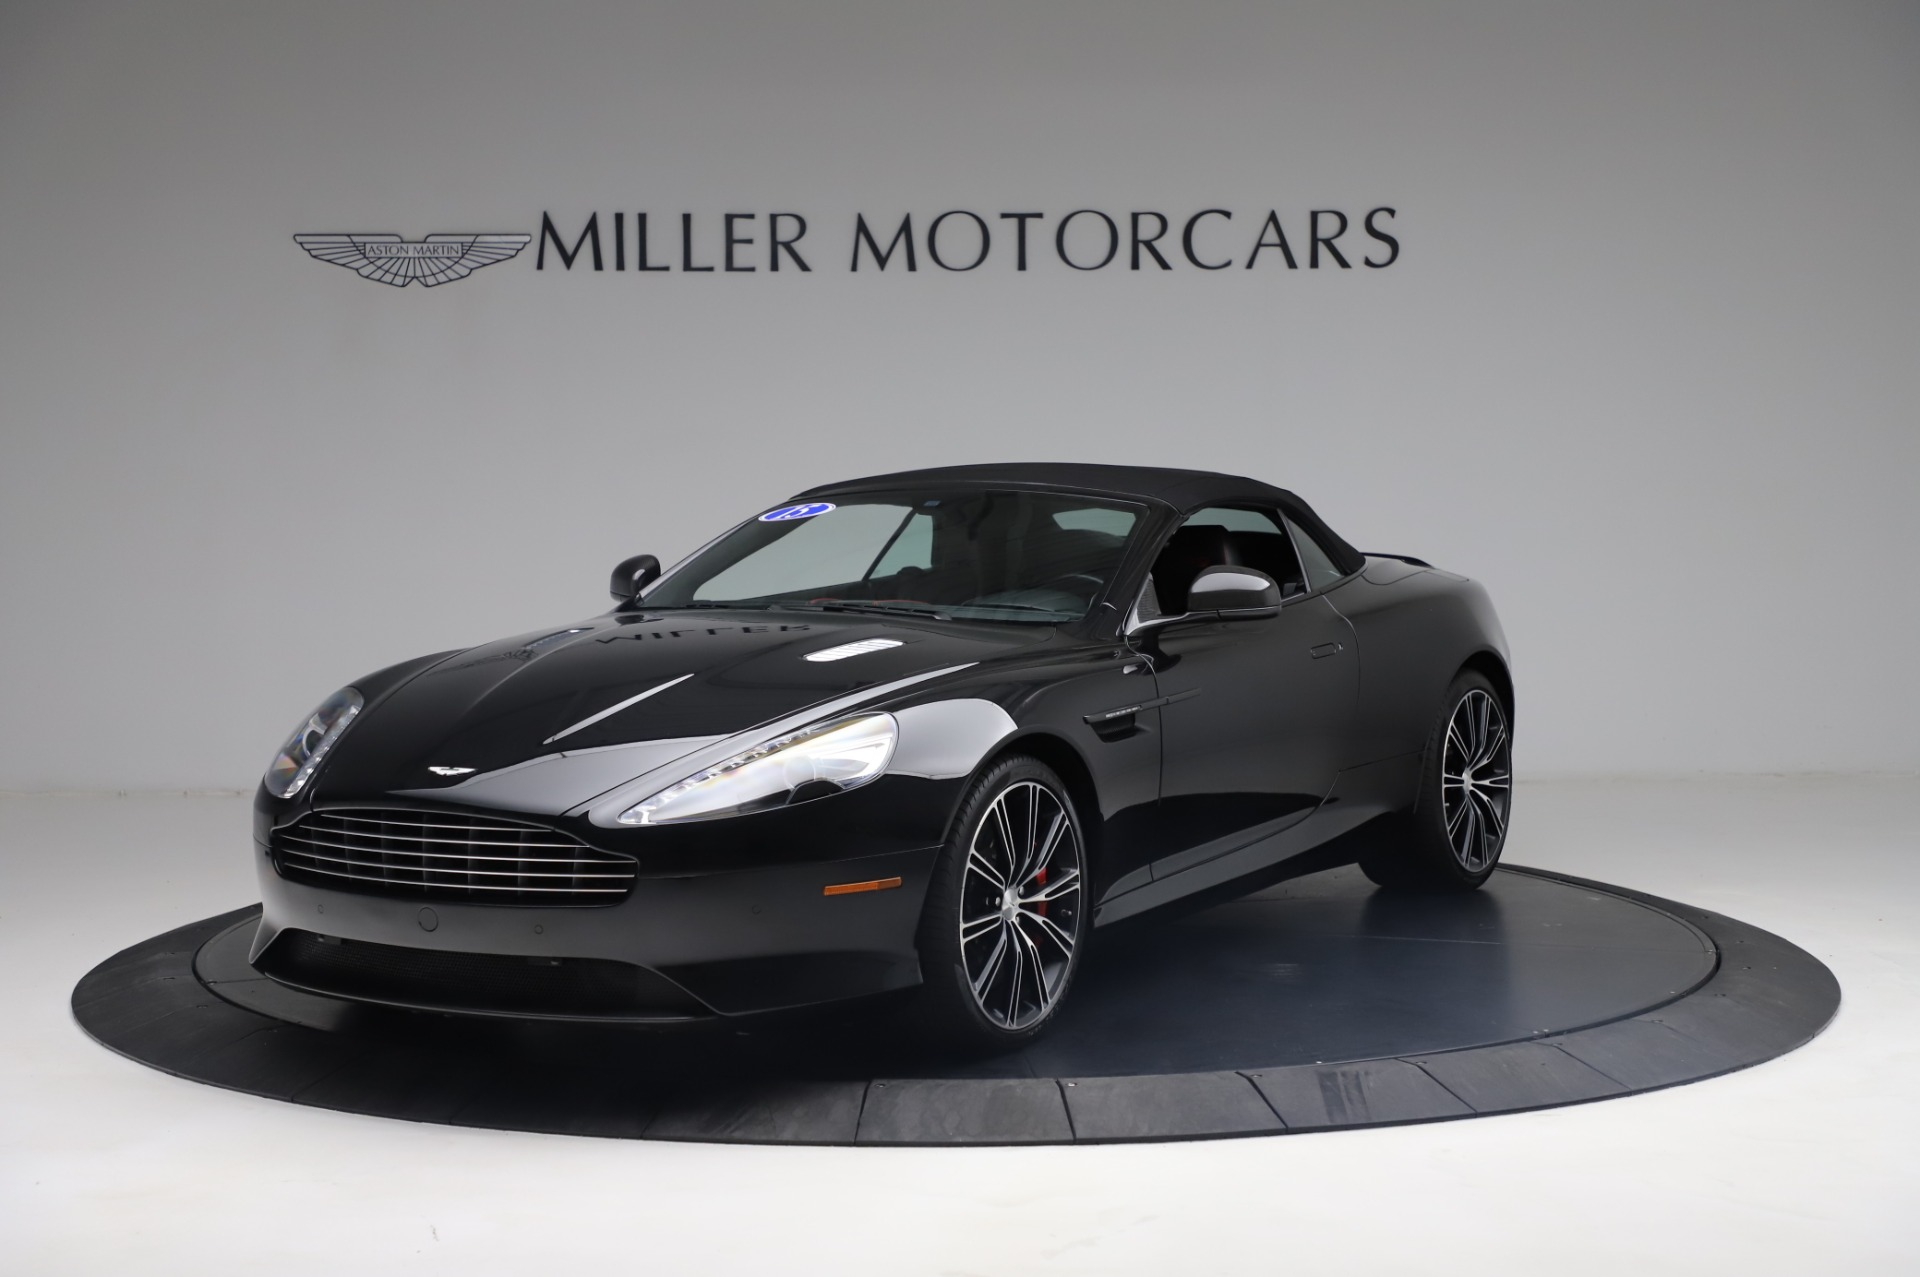 Used 2015 Aston Martin DB9 Carbon Edition Volante For Sale In Westport, CT 1919_p13